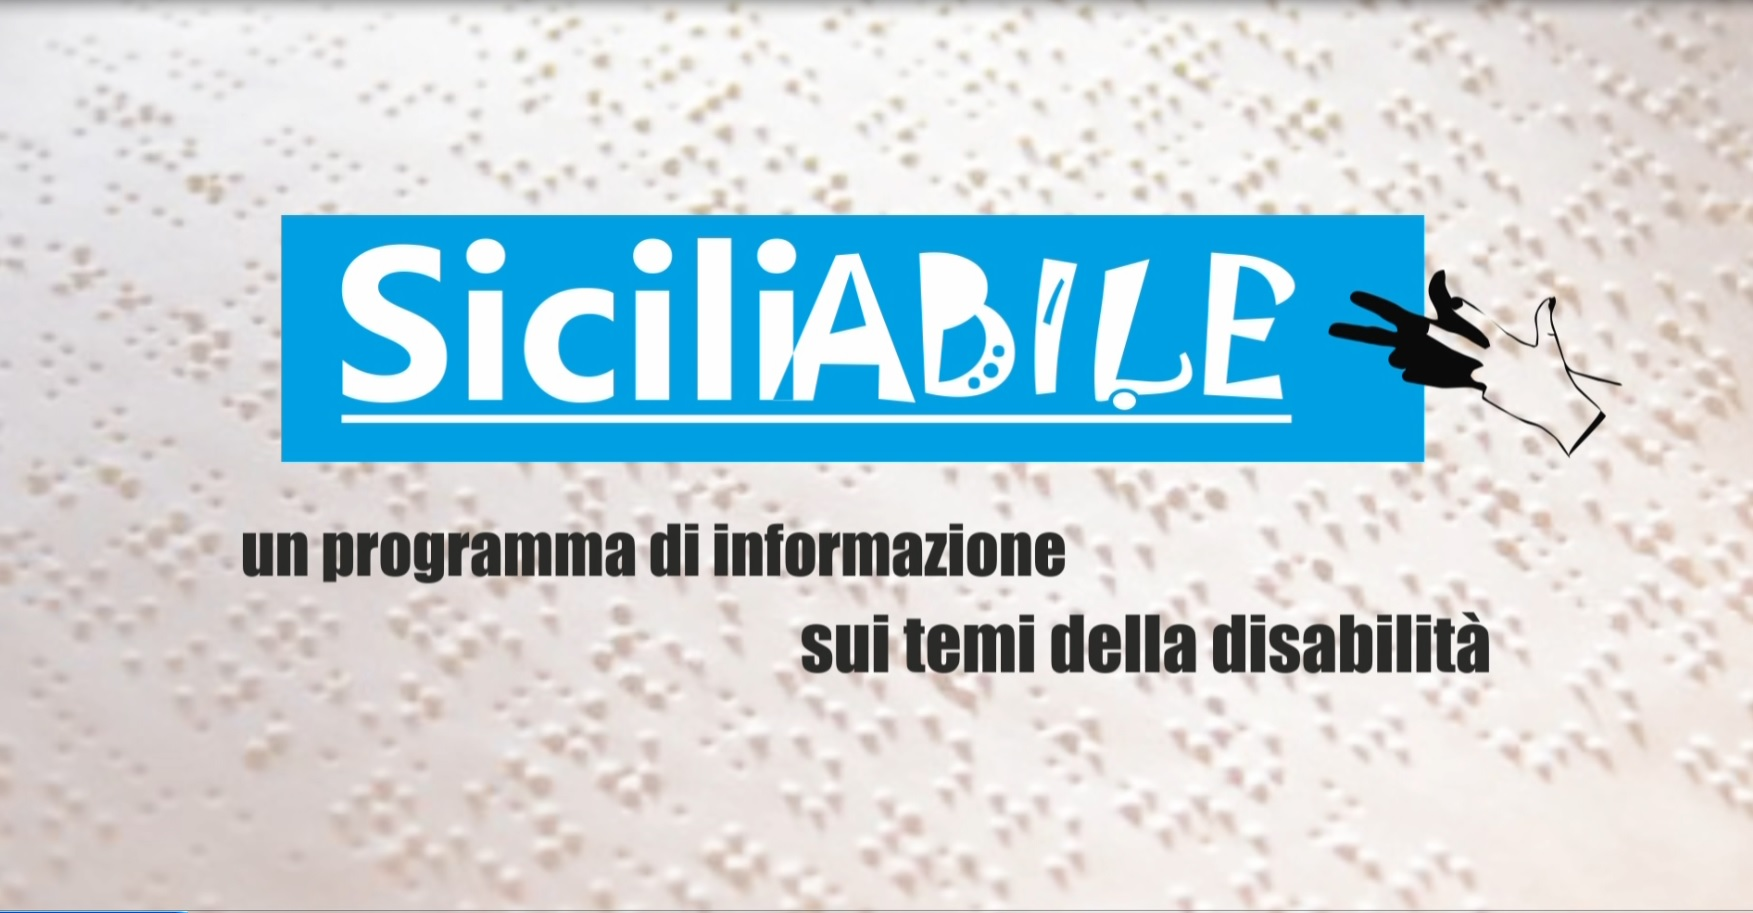 SiciliABILE copyright Panastudio